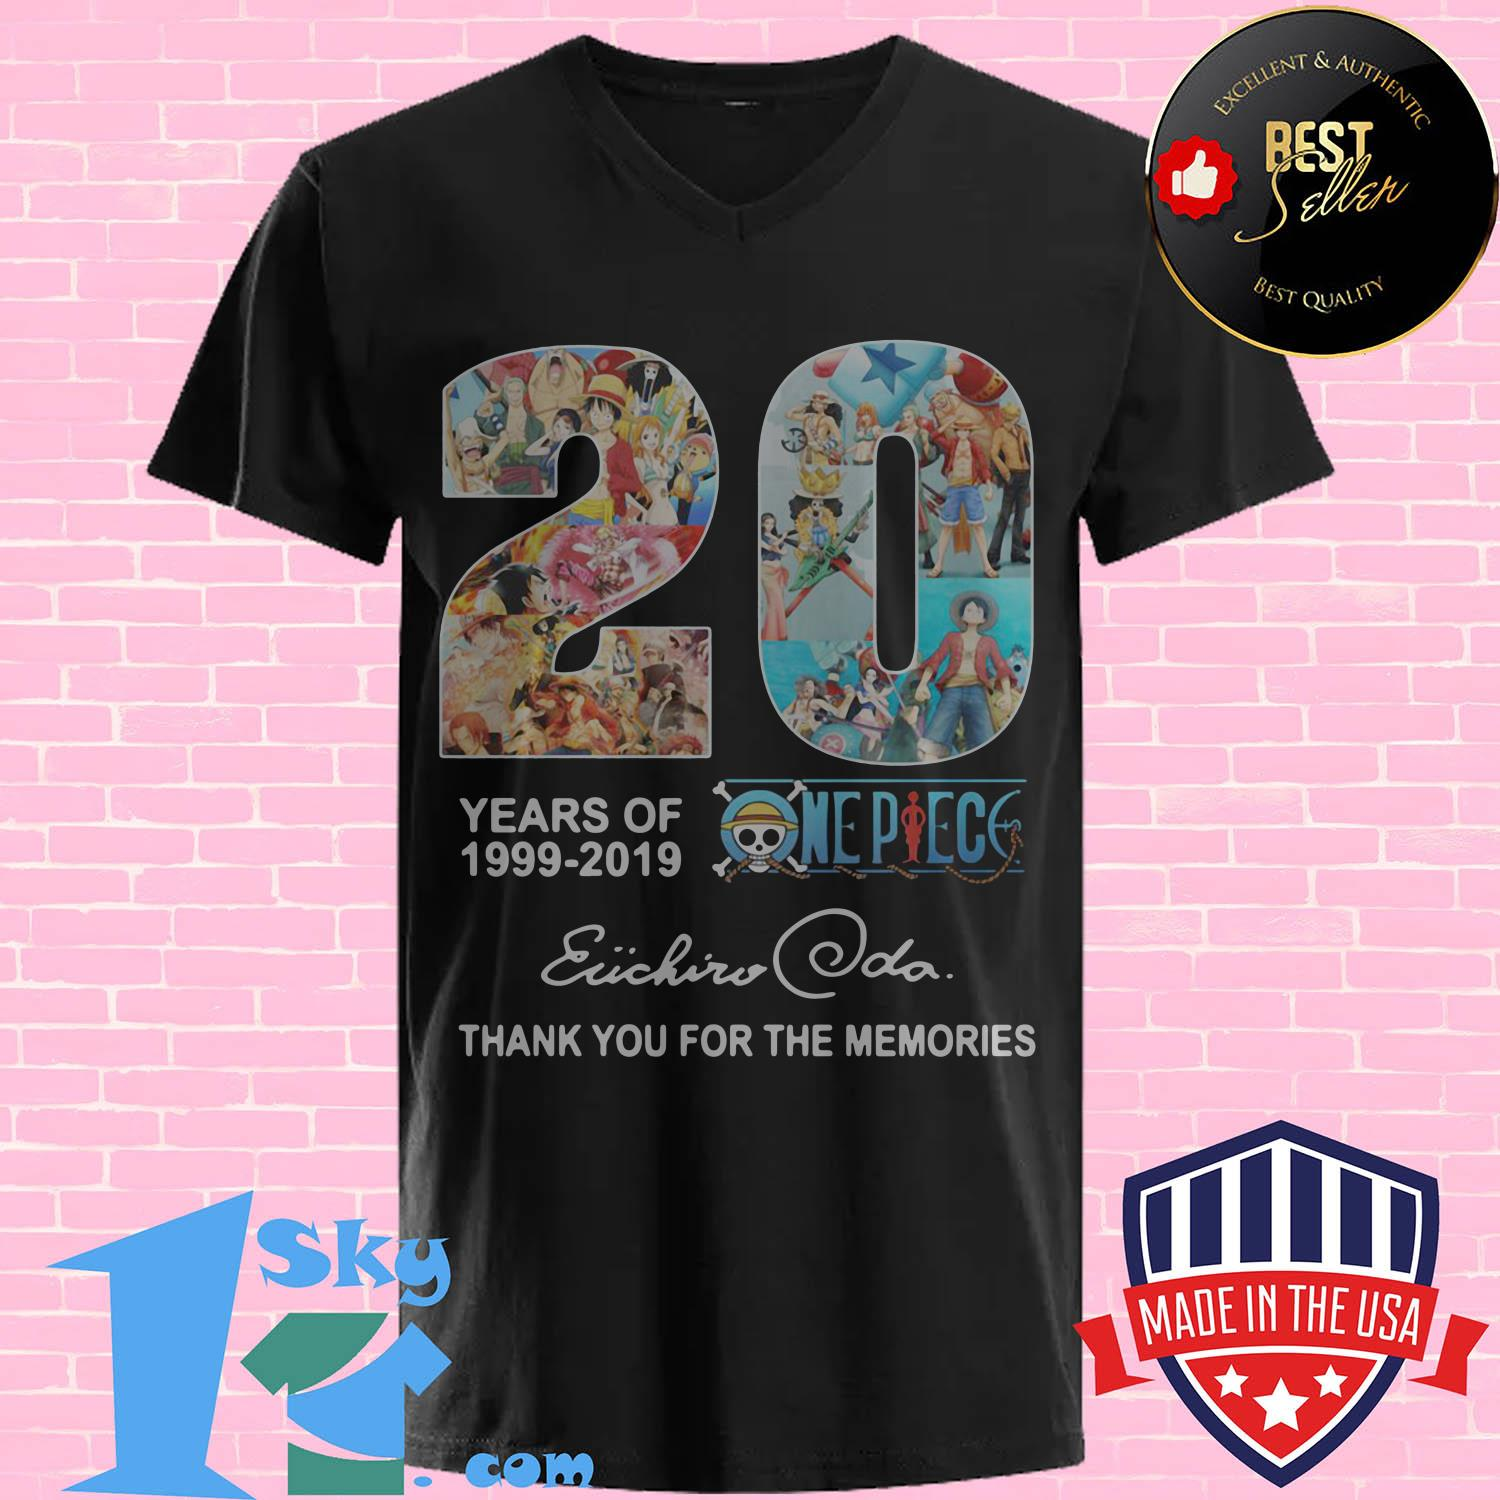 20 year of one piece anime anniversary 1999 2019 eiichiro oda v neck - 20 year of One Piece Anime anniversary 1999 2019 Eiichiro Oda shirt